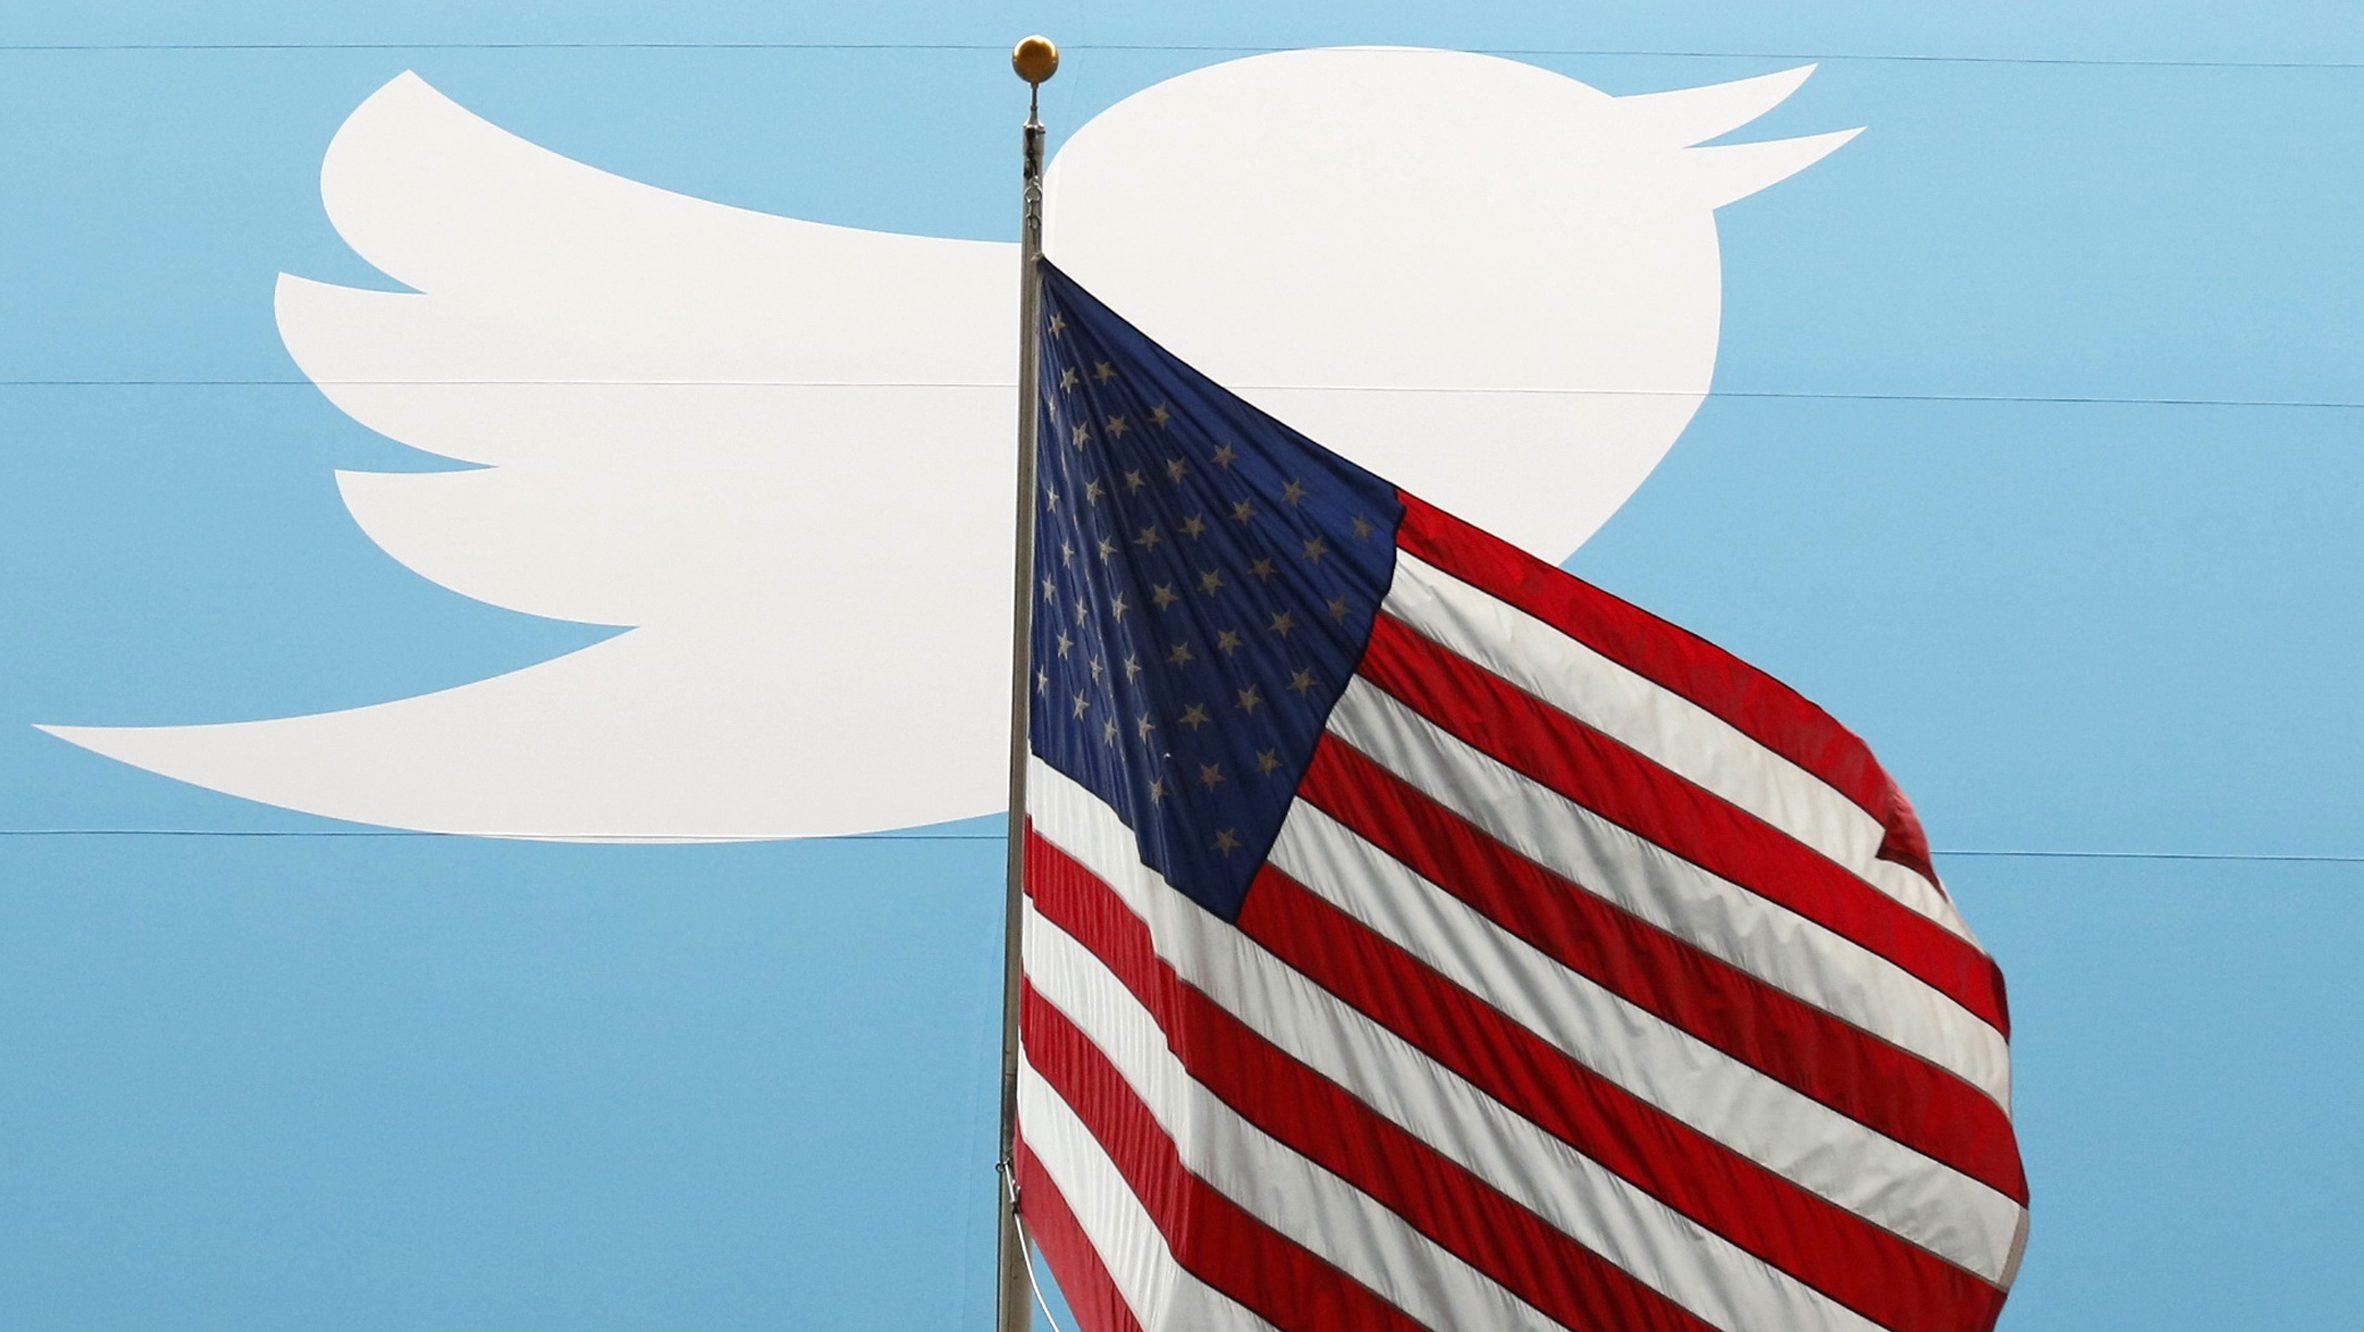 Trump's frequent use of Twitter amplifies his voice